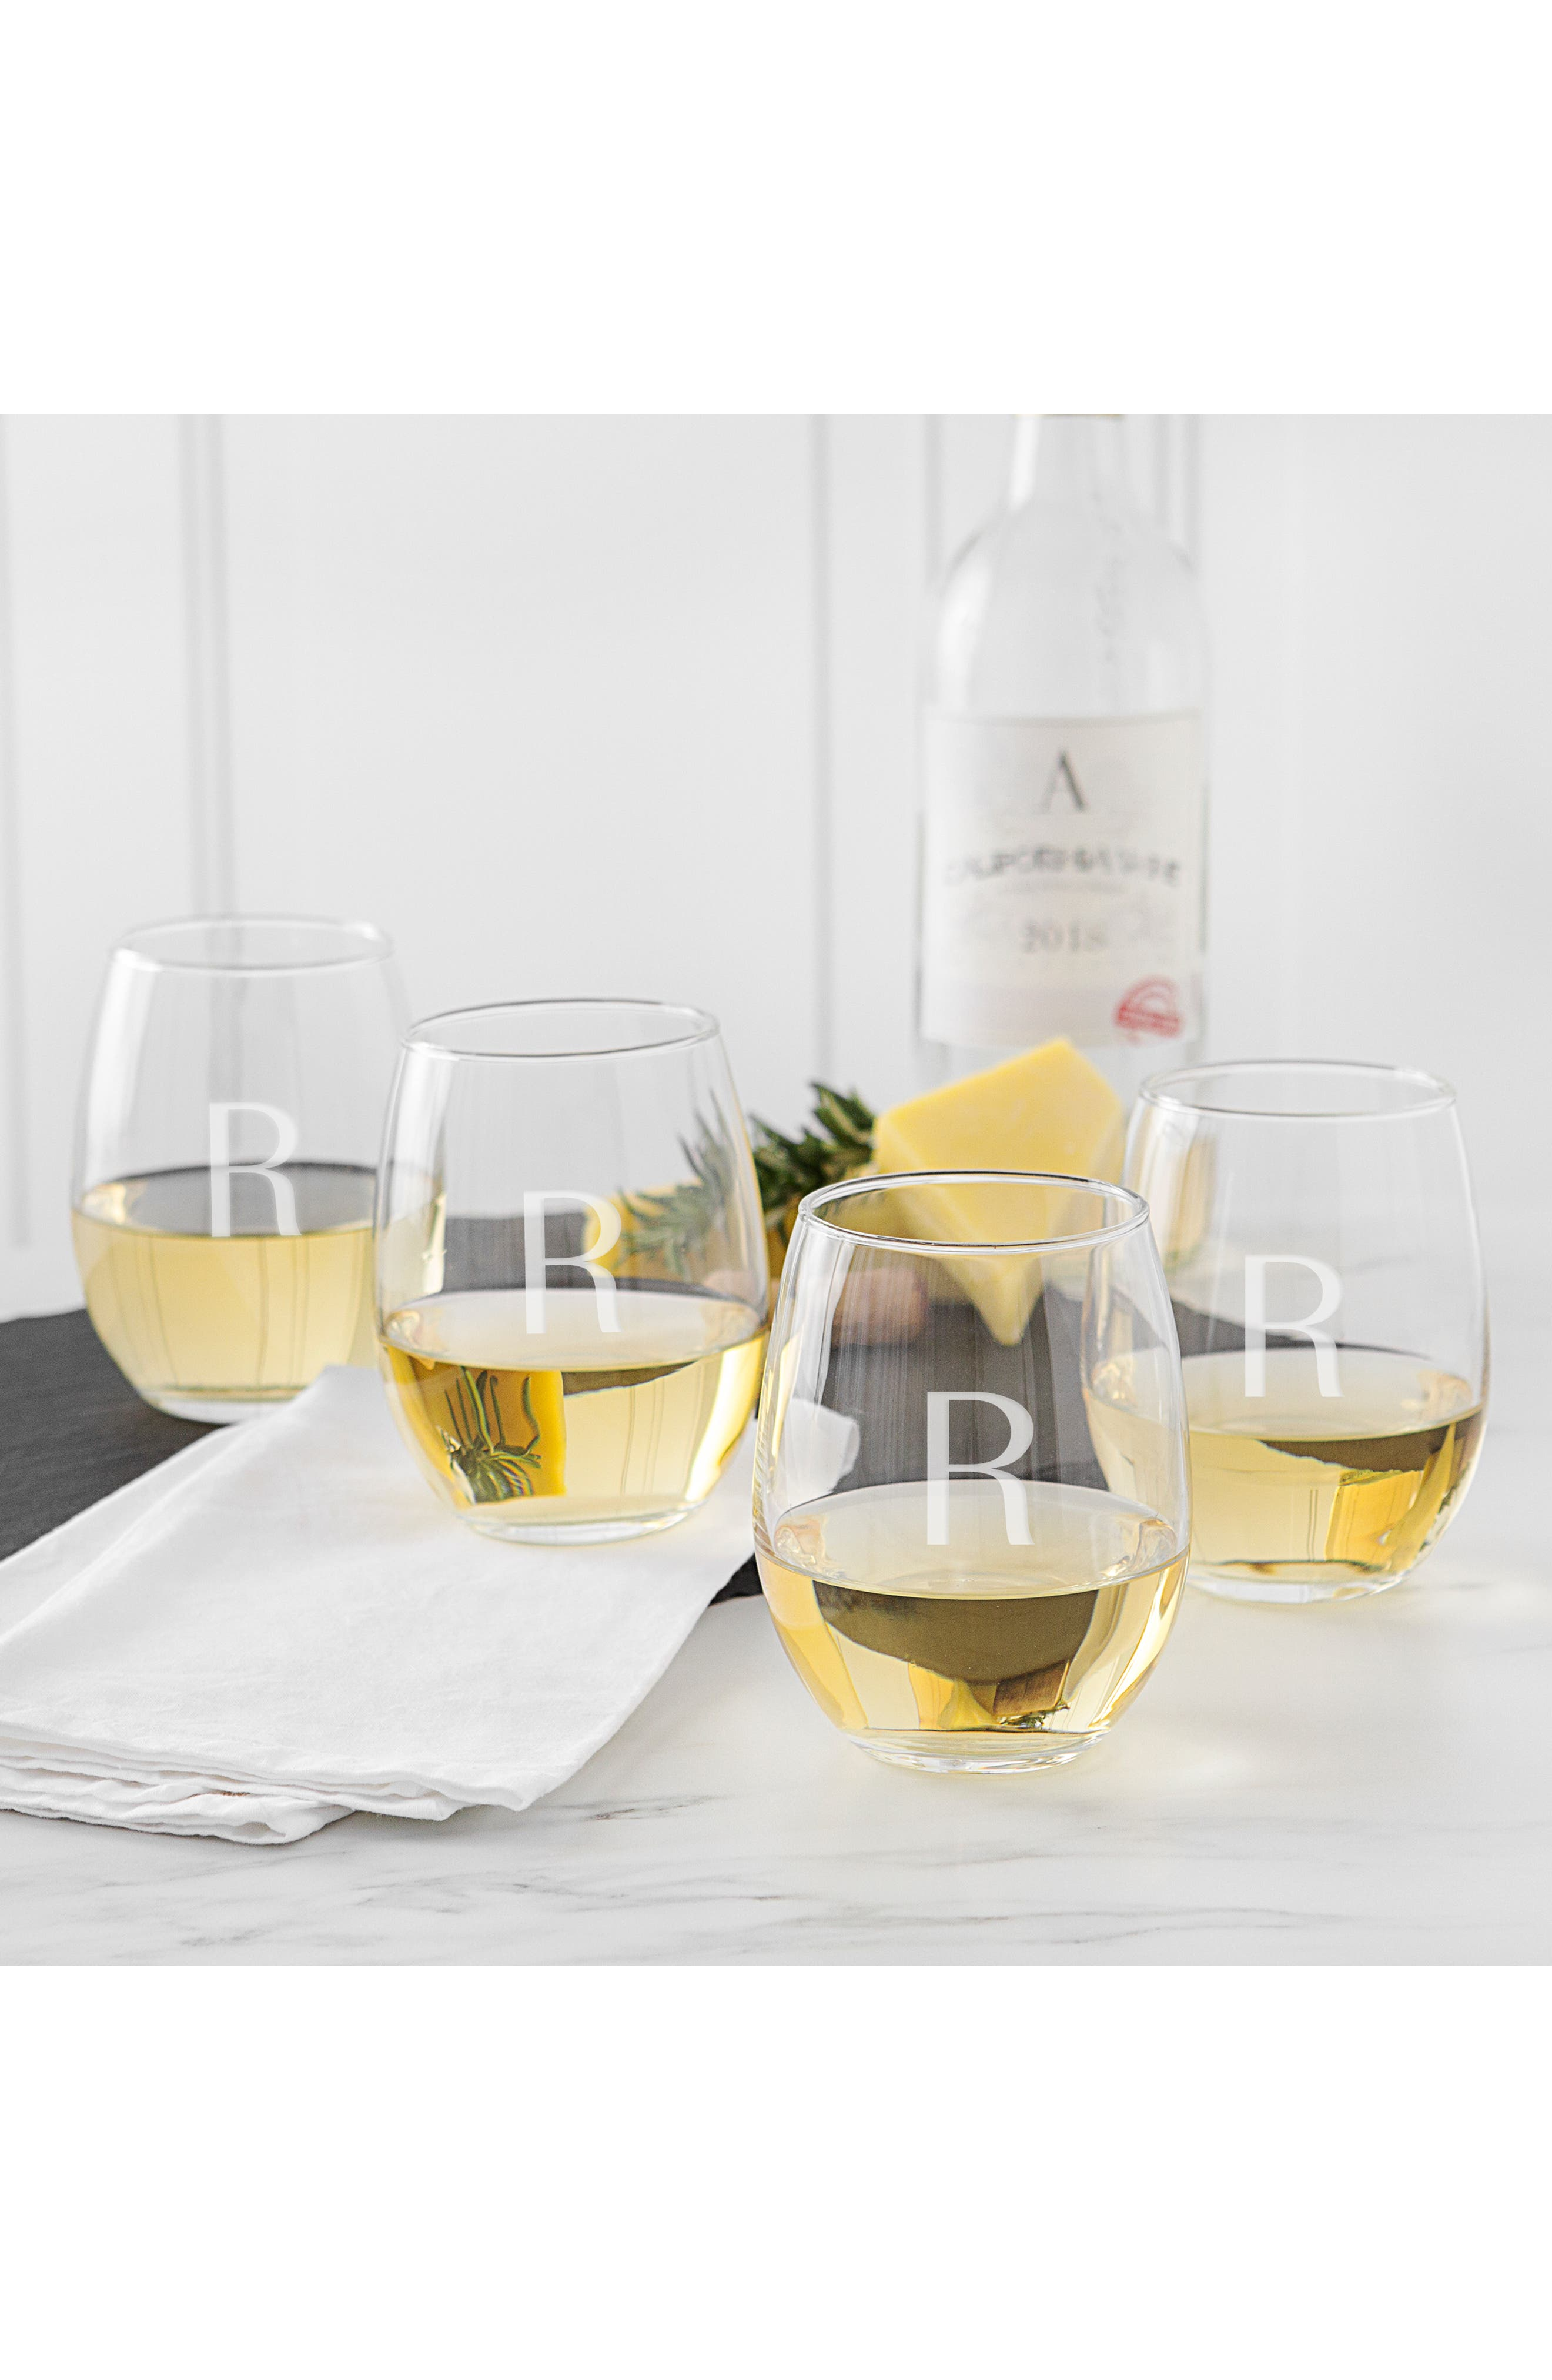 Estate Collection Set of 4 Monogram Stemless Wine Glasses,                             Alternate thumbnail 3, color,                             BLANK